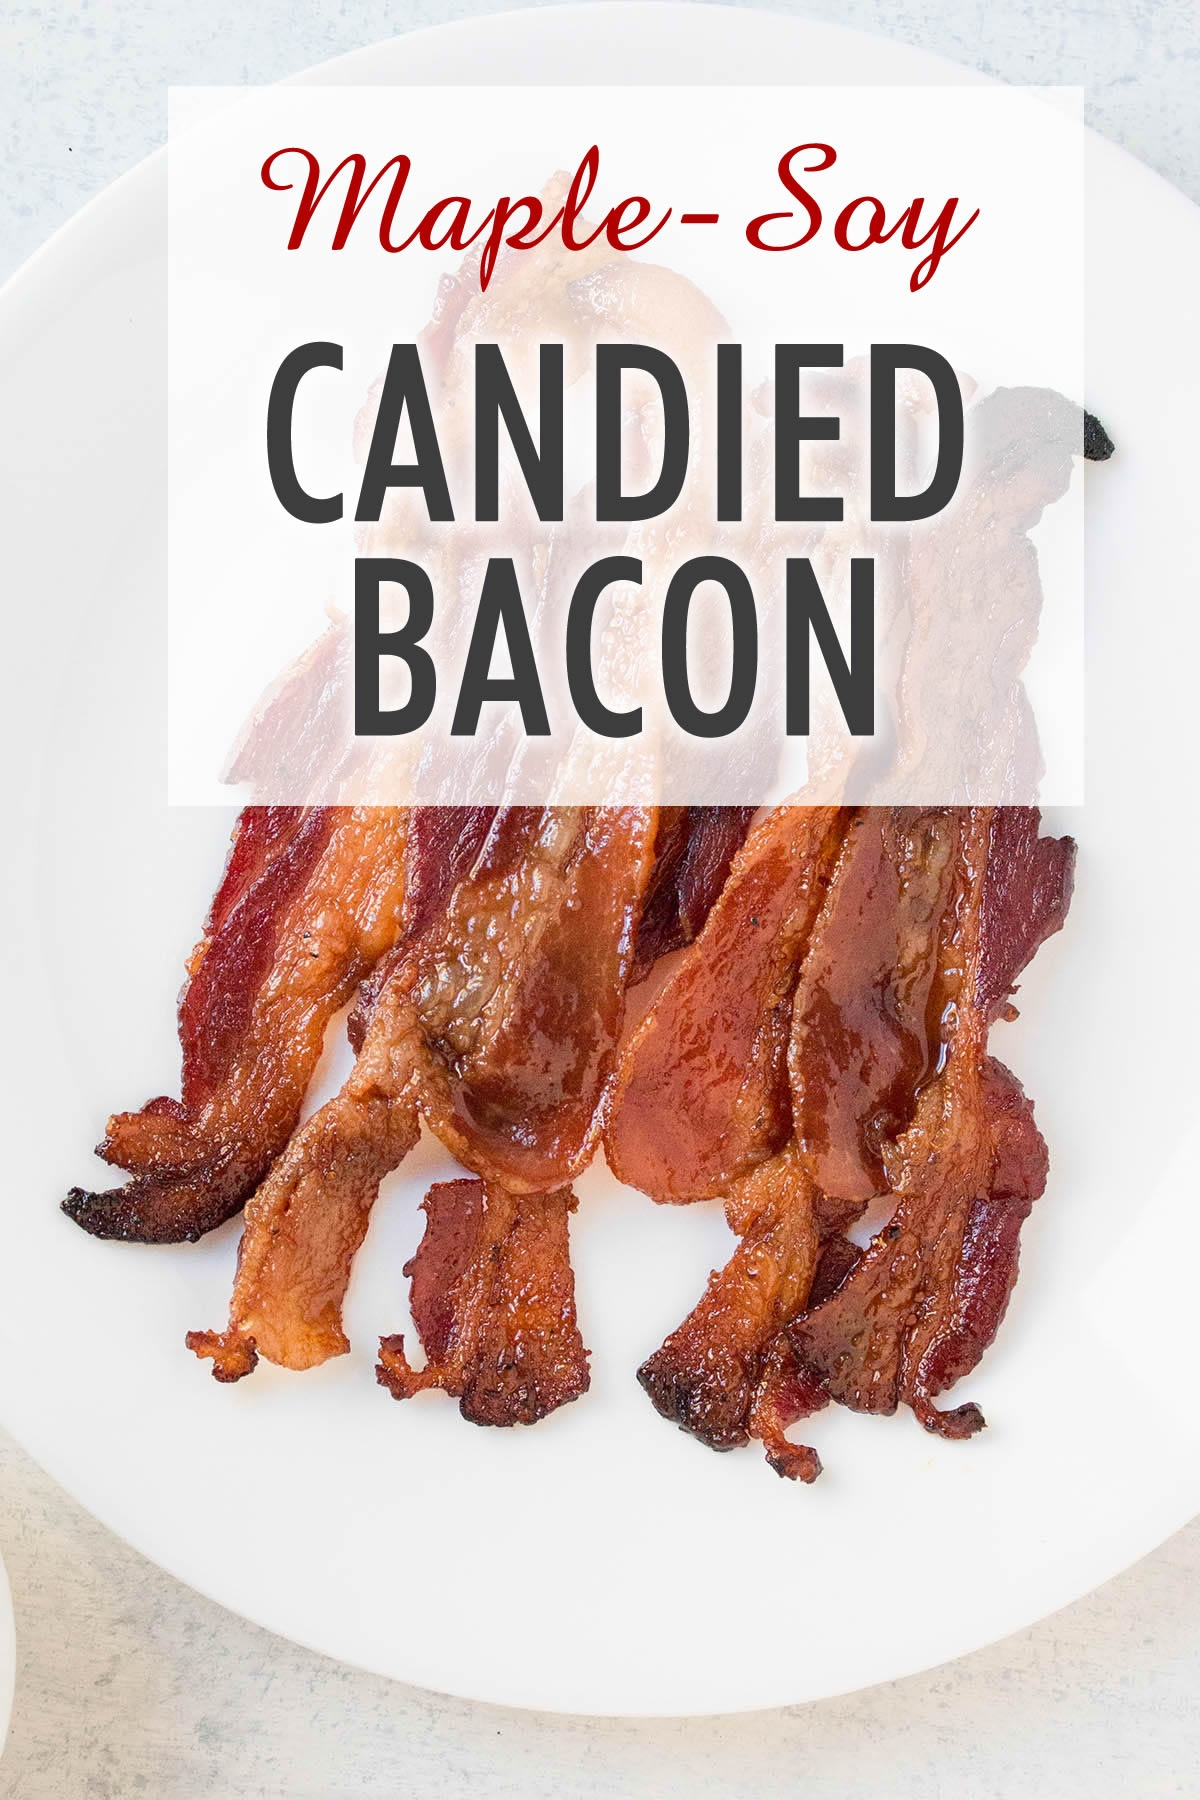 Oven Baked Maple-Soy Candied Bacon